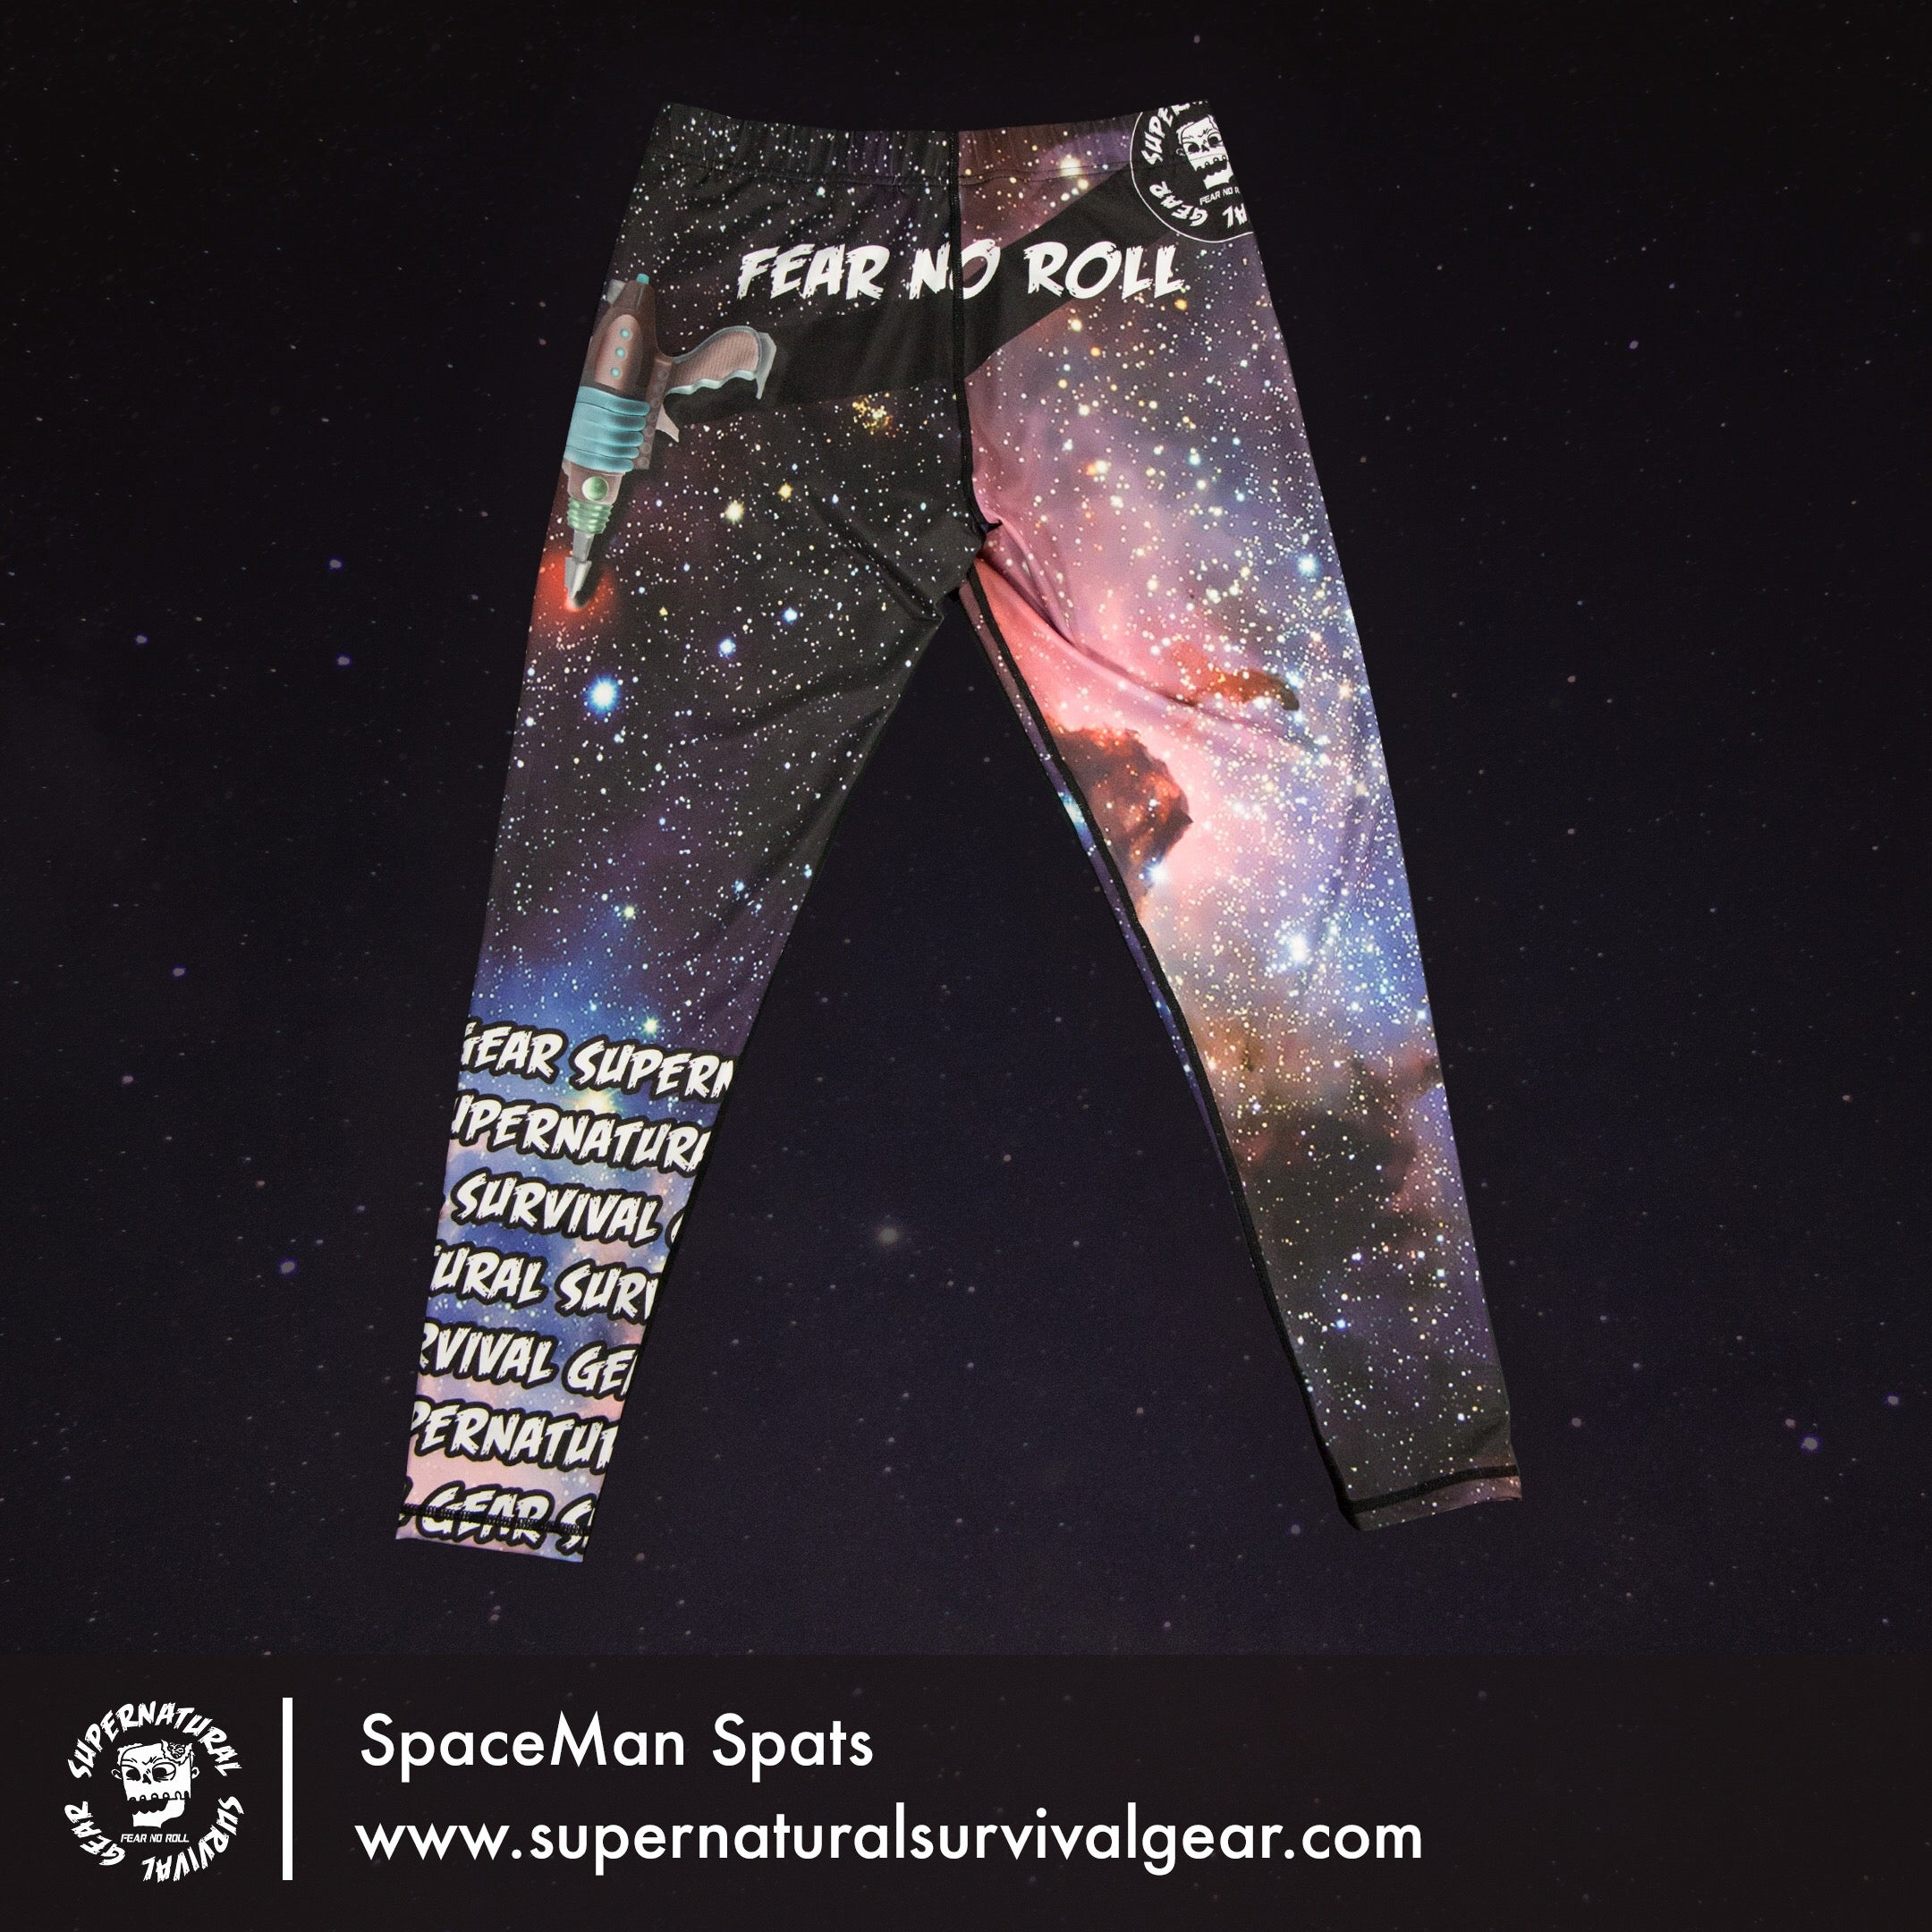 SpaceMan Spats